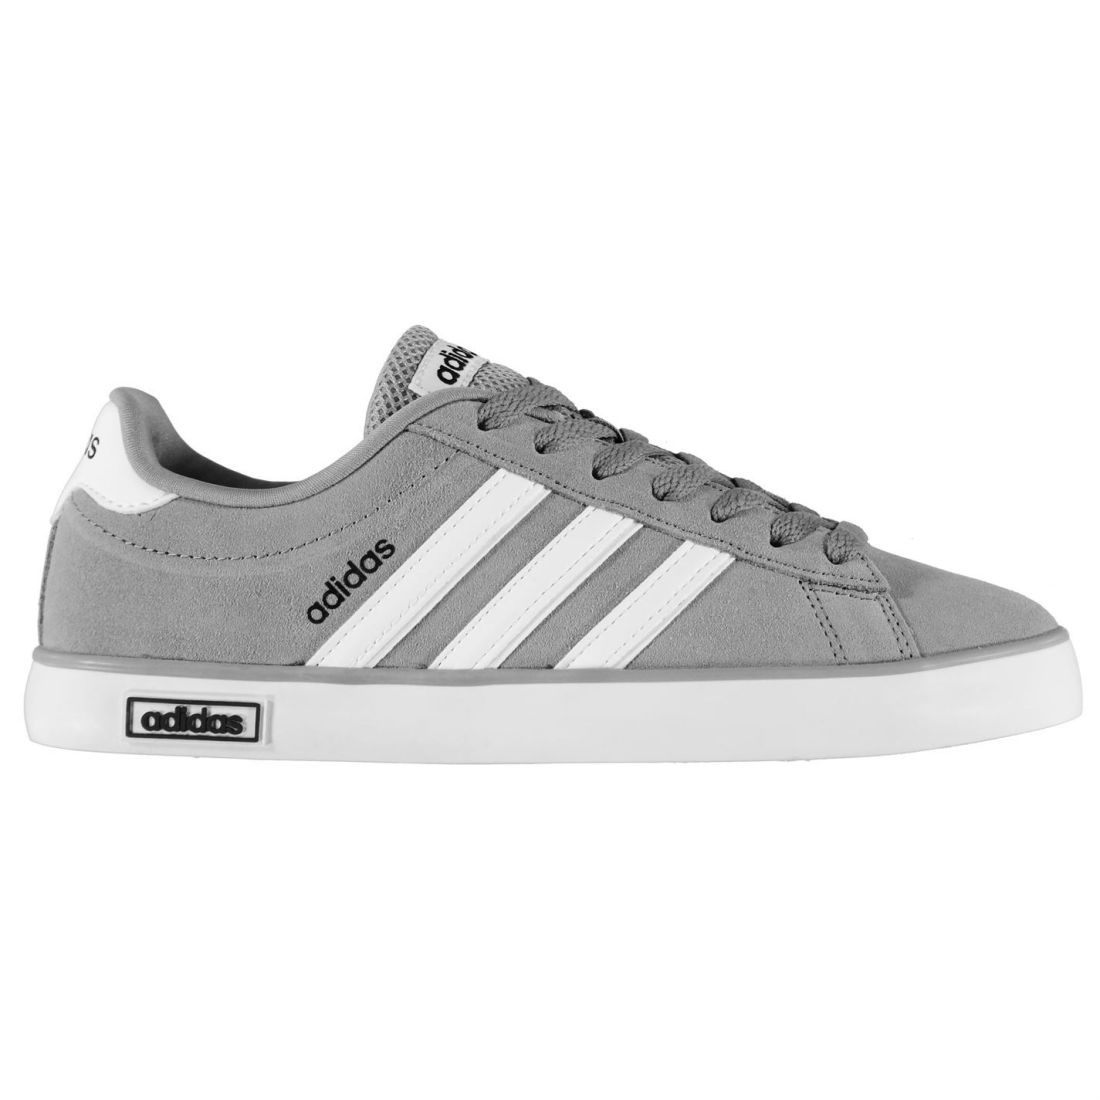 2c7fe4e72 adidas Derby Vulc Suede Trainers Mens Shoes Grey white UK 8 (42). About  this product. Picture 1 of 8  Picture 2 of 8  Picture 3 of 8 ...